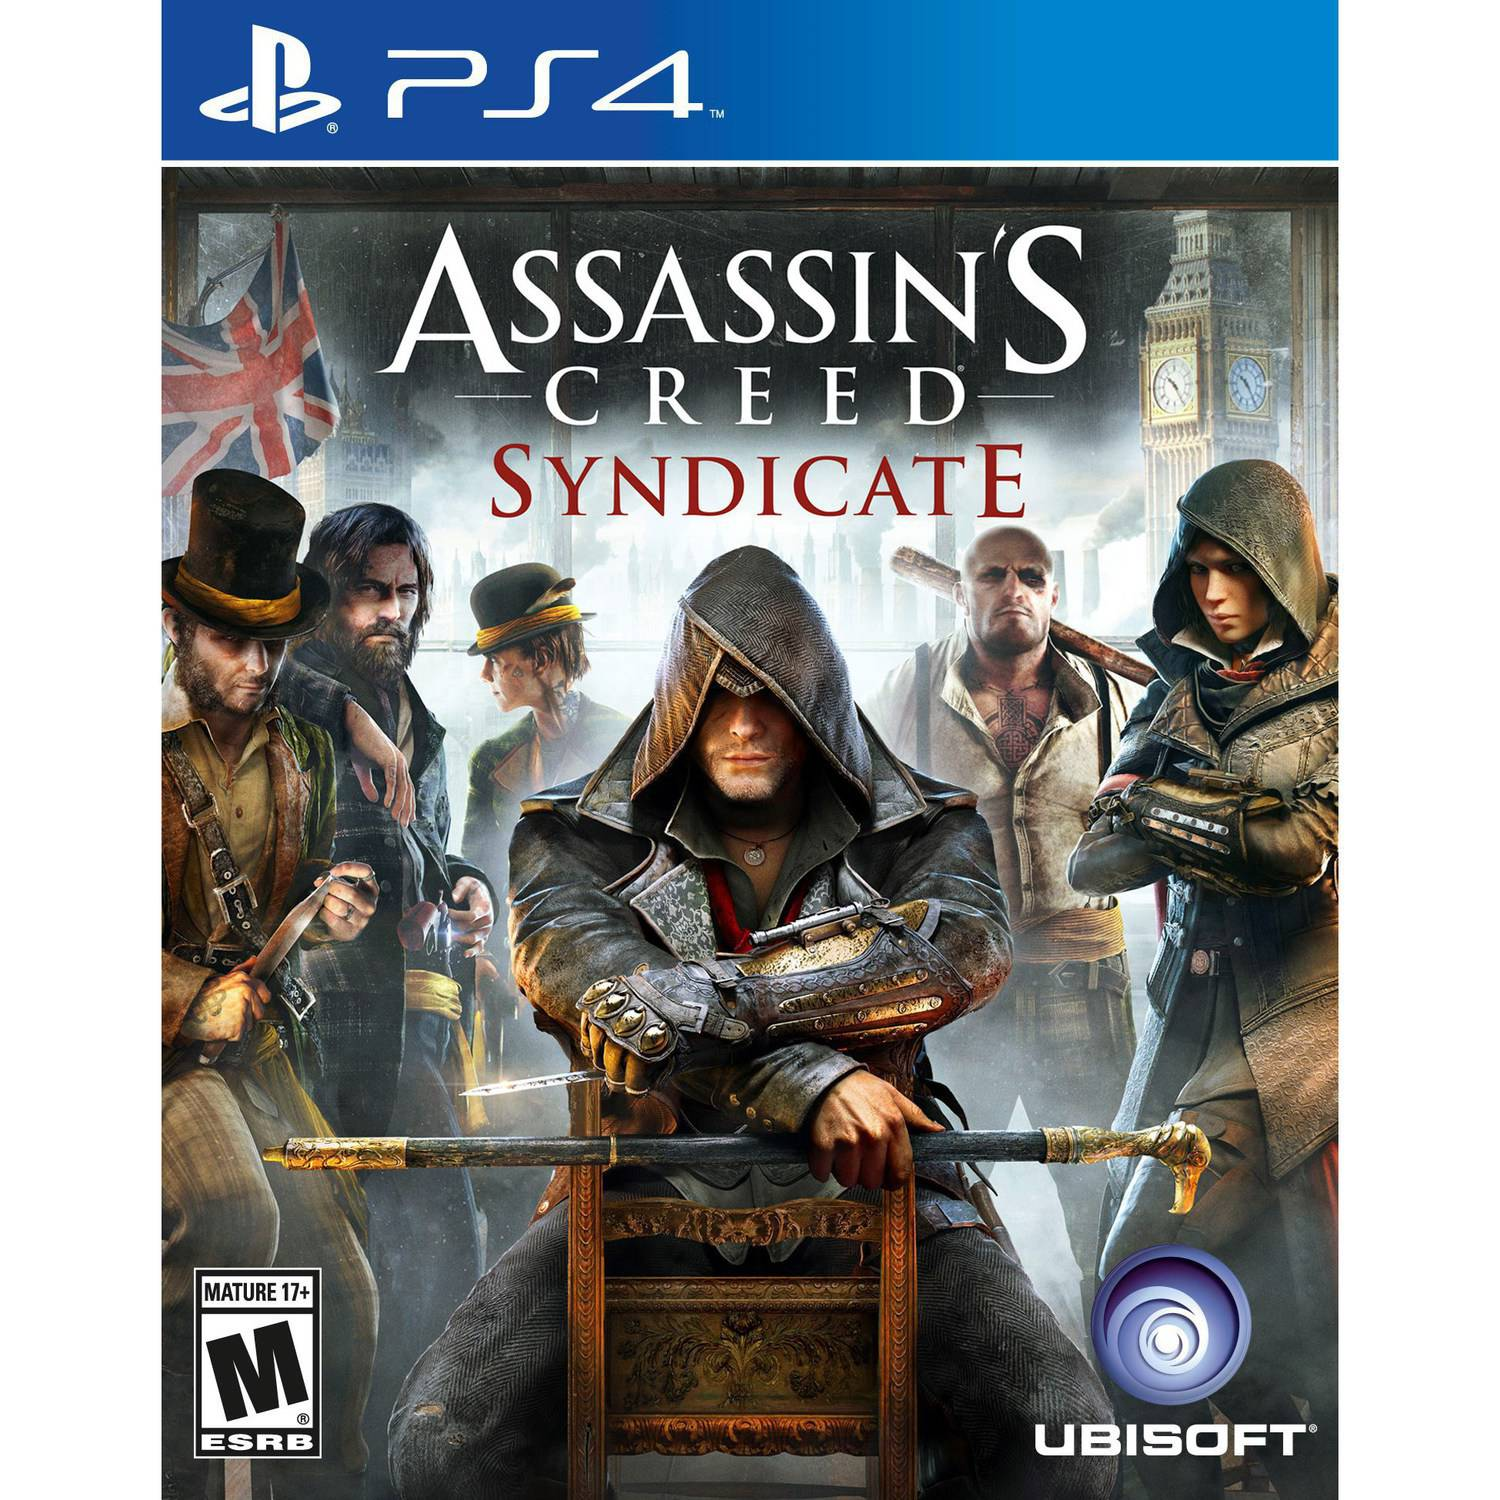 Assassin's Creed Syndicate (PS4) - Pre-Owned